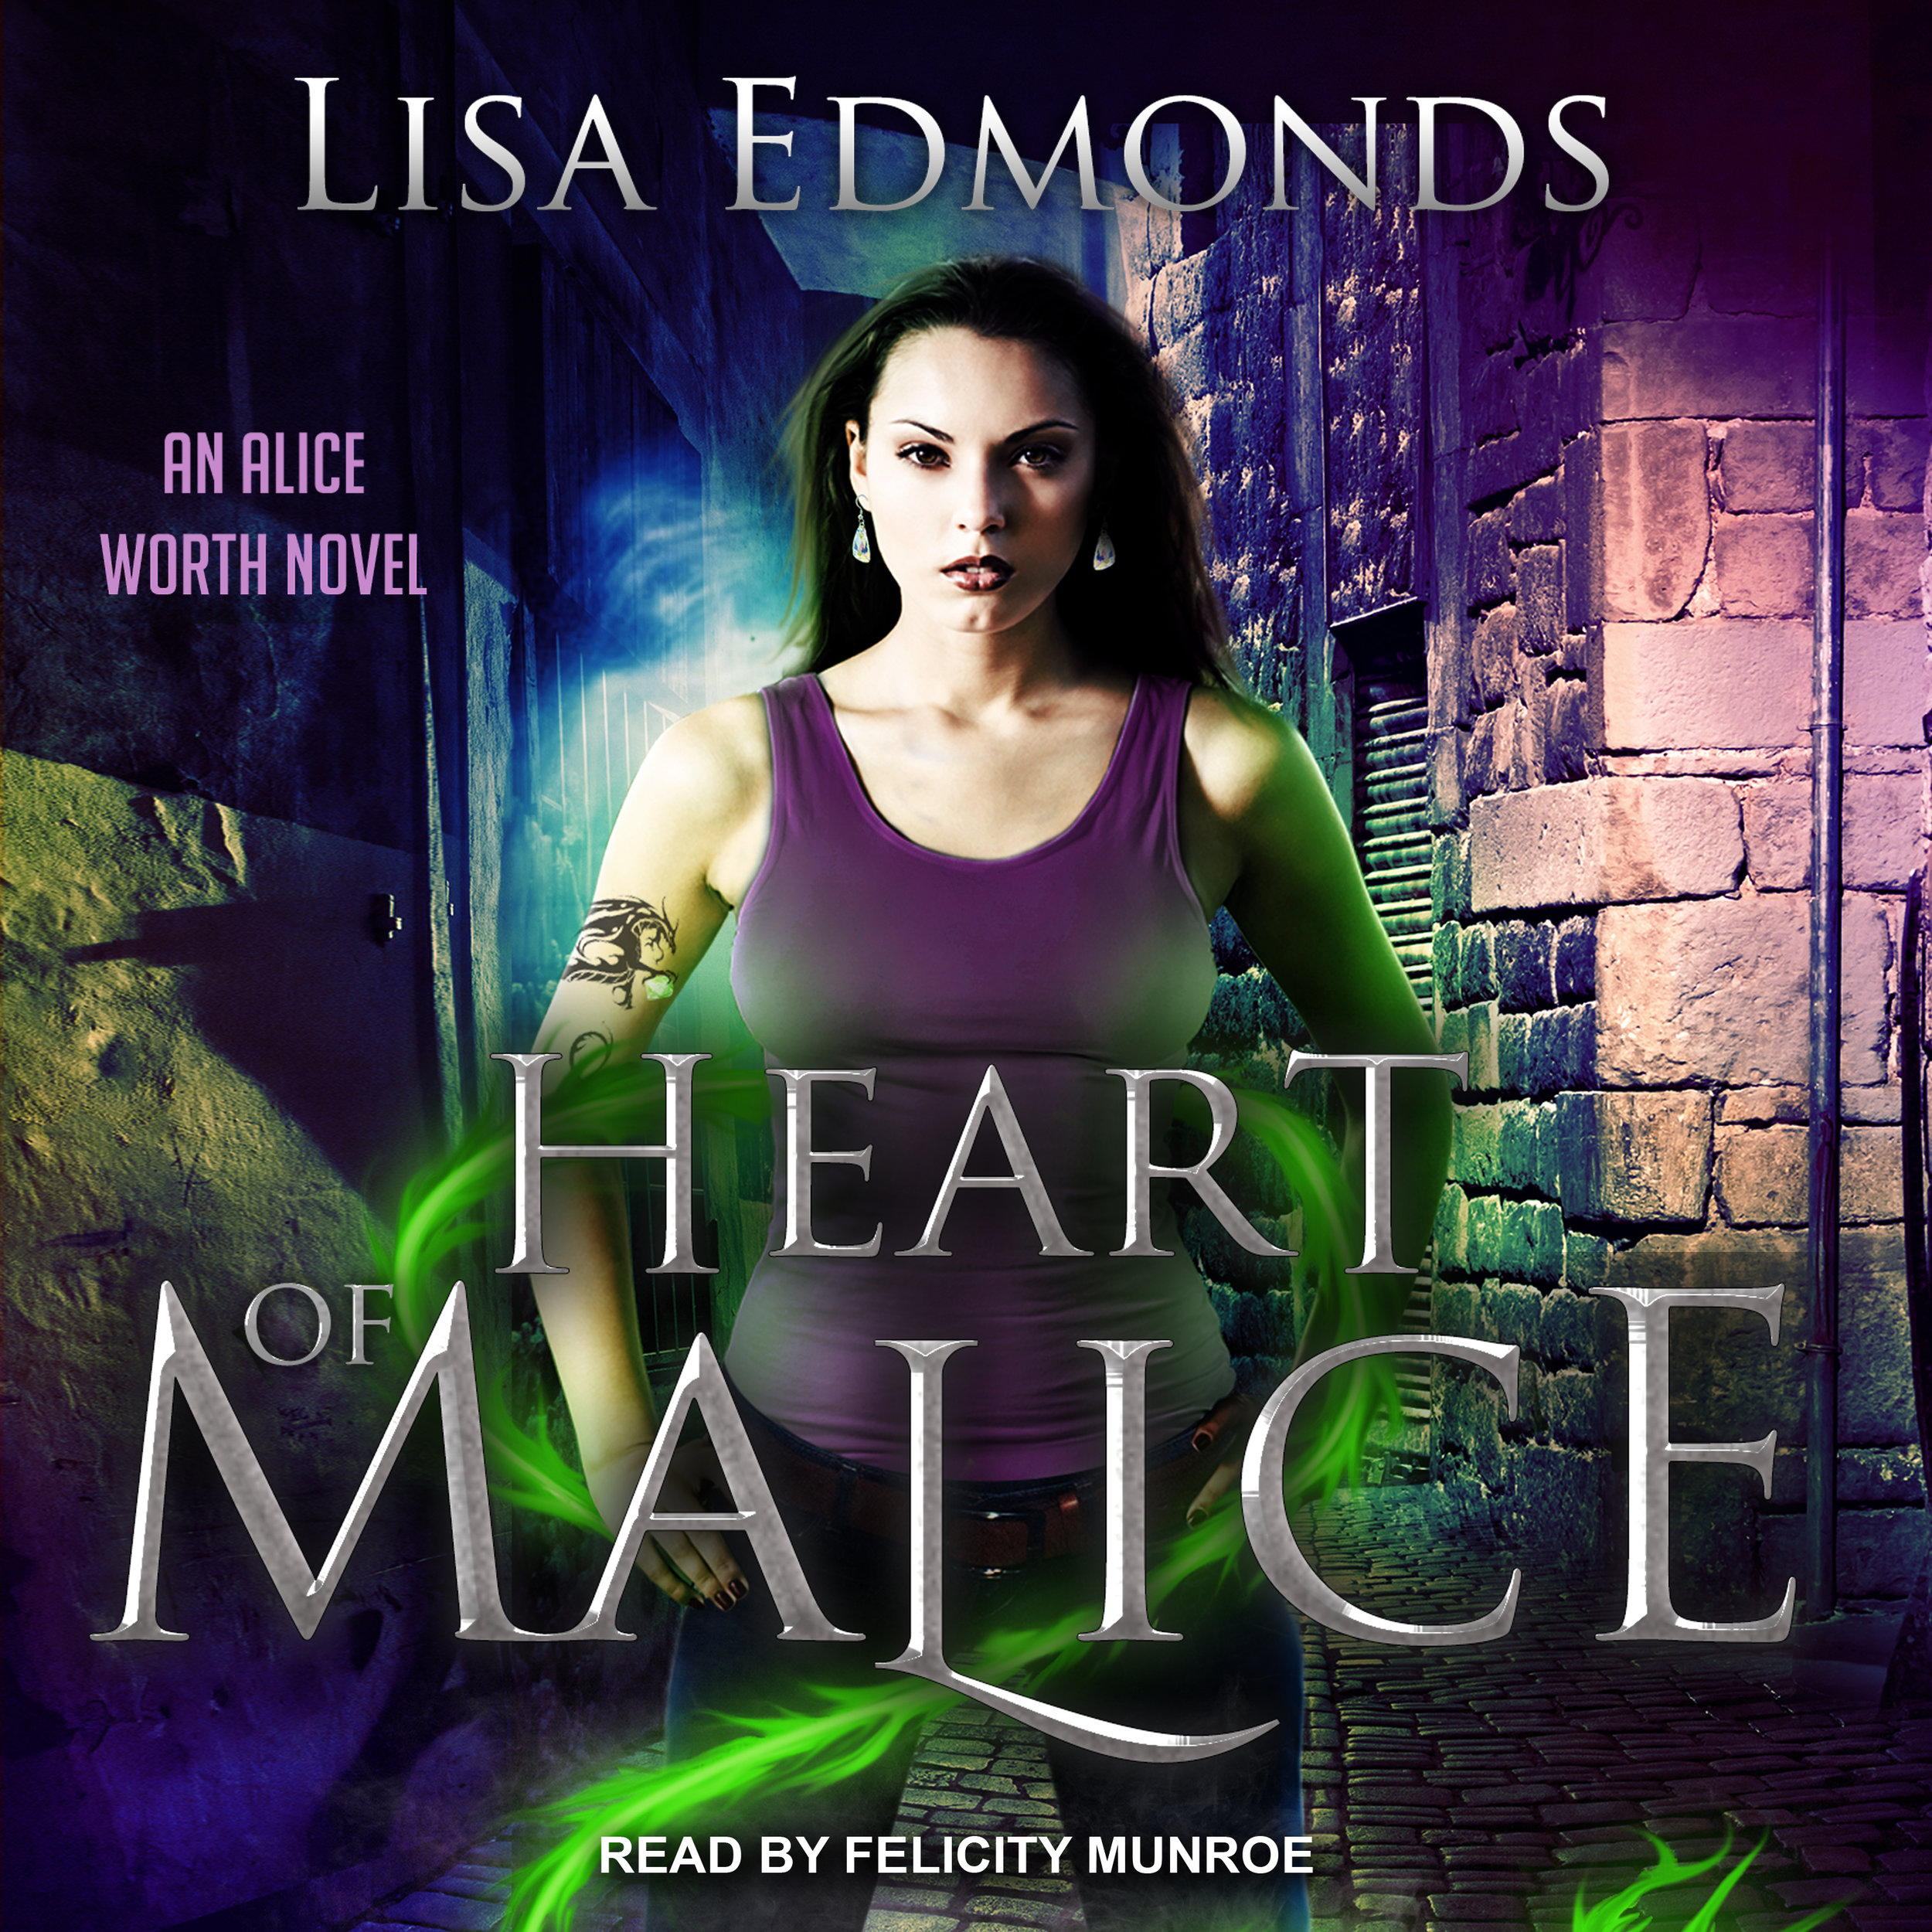 Your Free Download - Click HERE to download Chapter 1 of the Heart of Malice audiobook! (1 MP3 file, file size 16 MB)Click HERE to purchase the full audiobook from Audible/Amazon!Thank you for subscribing to my newsletter updates! More freebies coming soon!